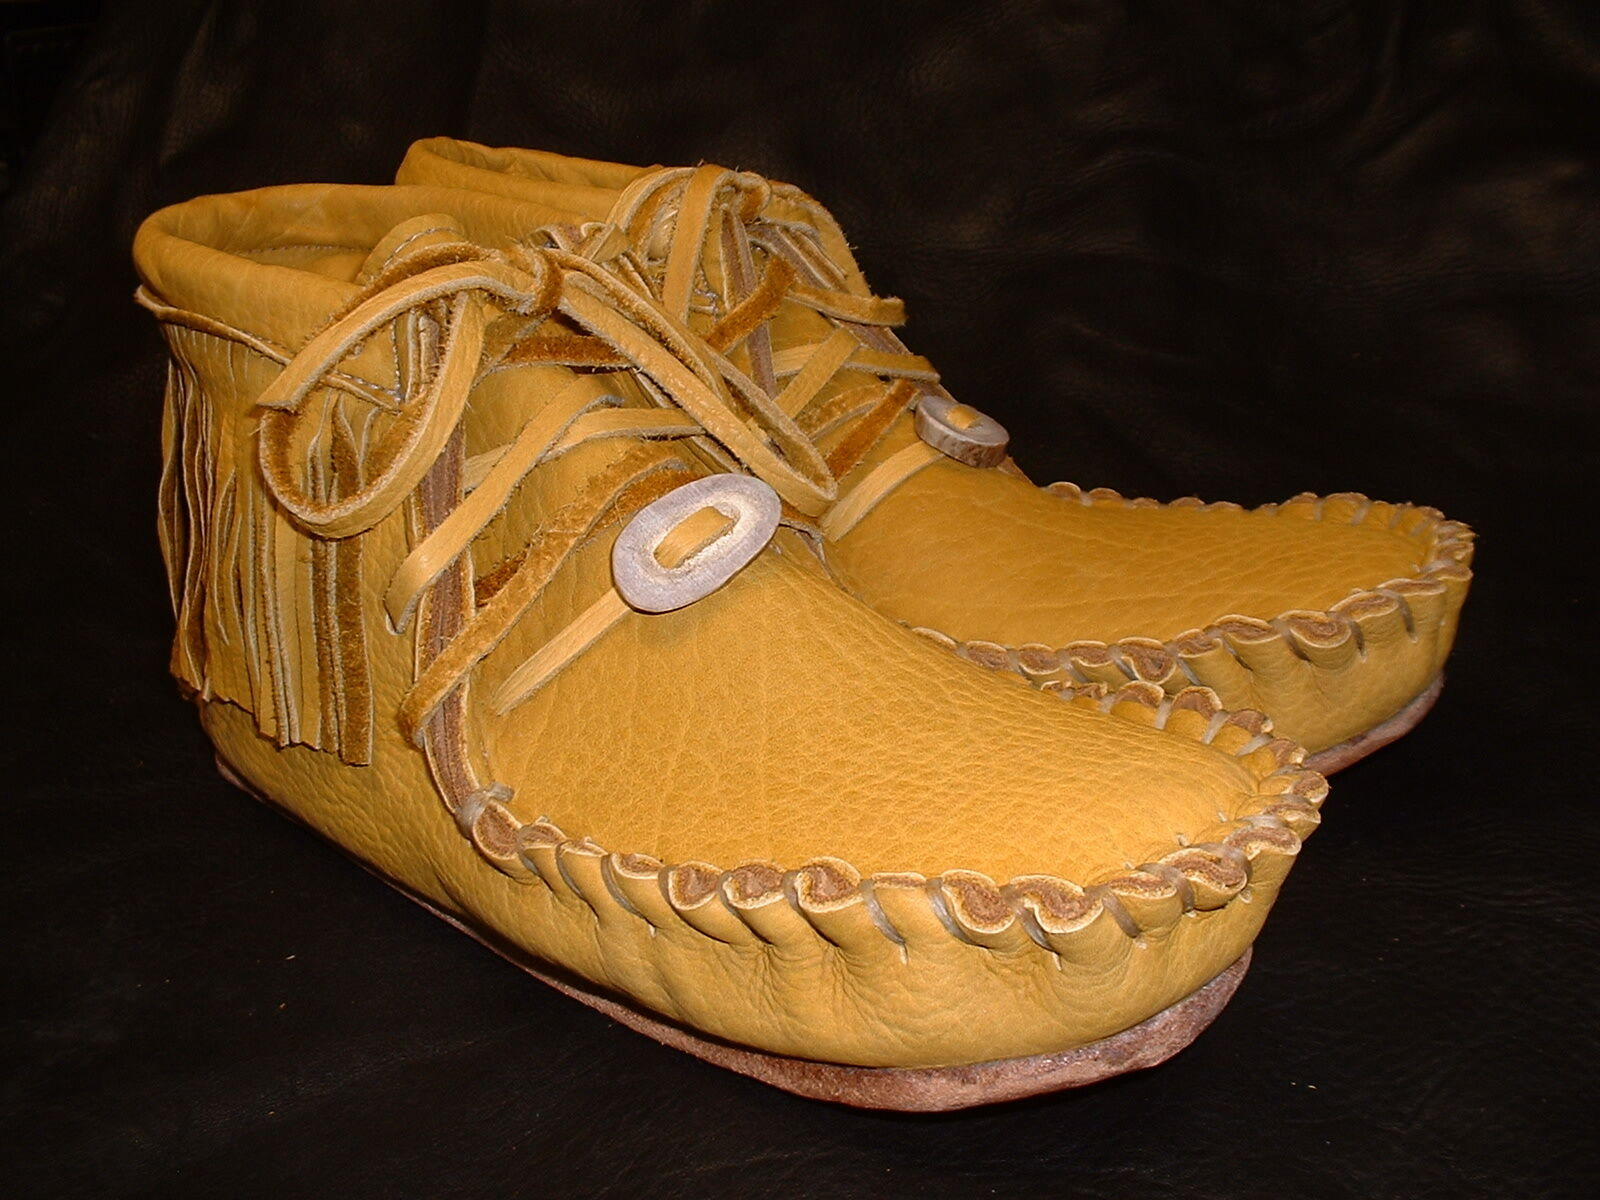 Buffalo Men's Dimensione 10 Pawnee Style Style Style Moccasins Western Cowboy indian Bison Leather 8bce5b